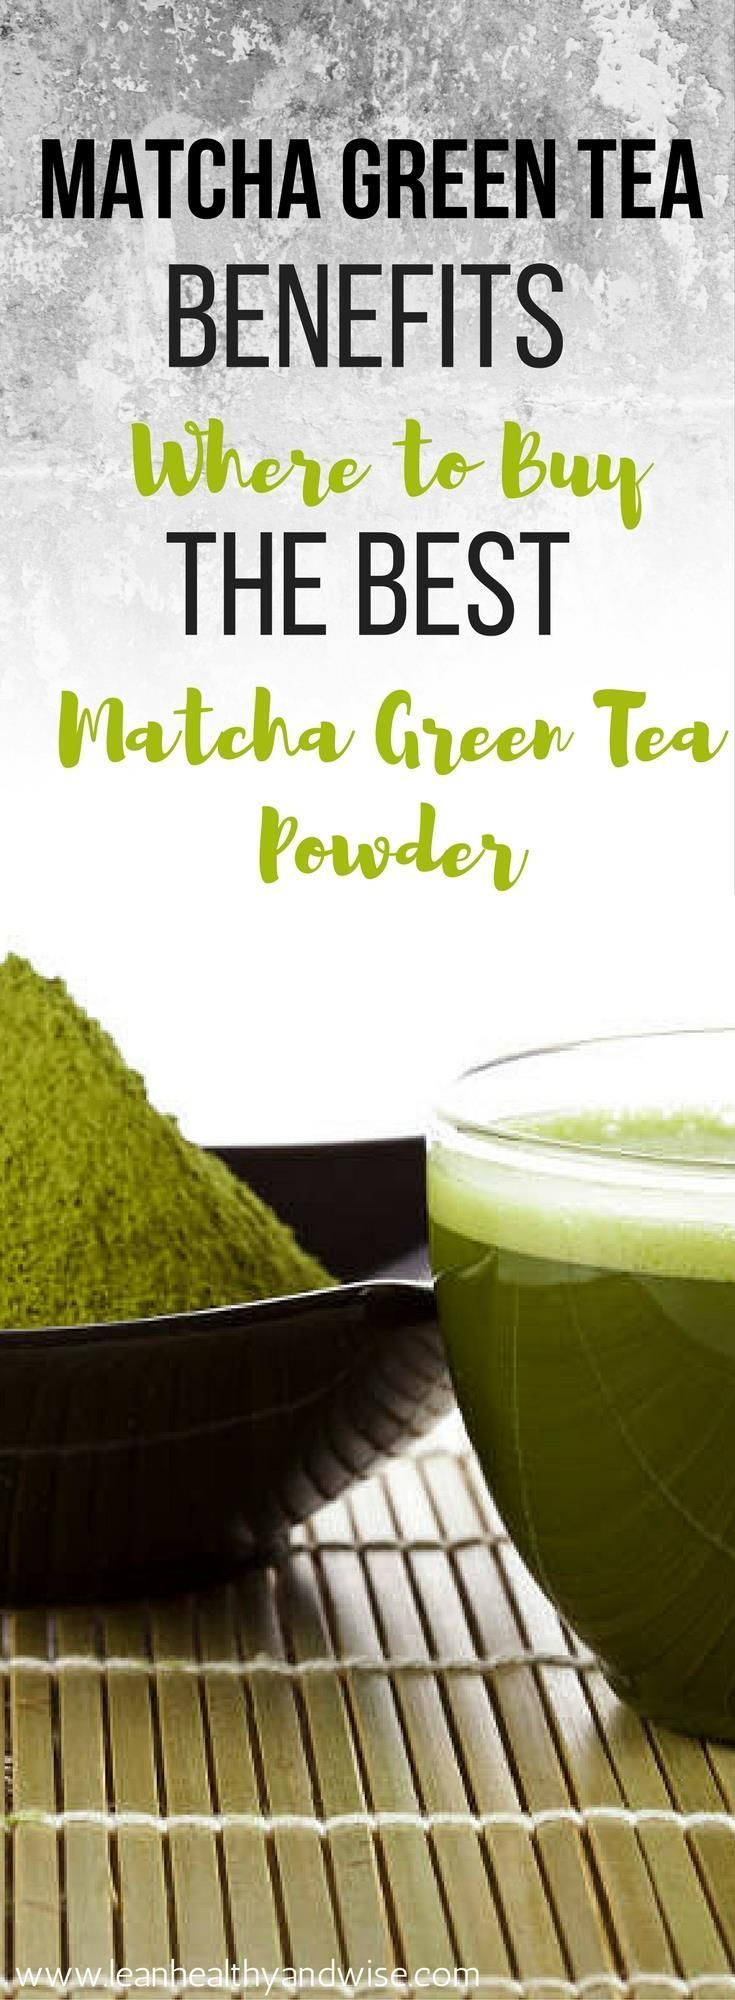 Discover the incredible health benefits of matcha green tea you didn't know about and find out where to buy the best matcha green tea powder. via @leanhealthywise